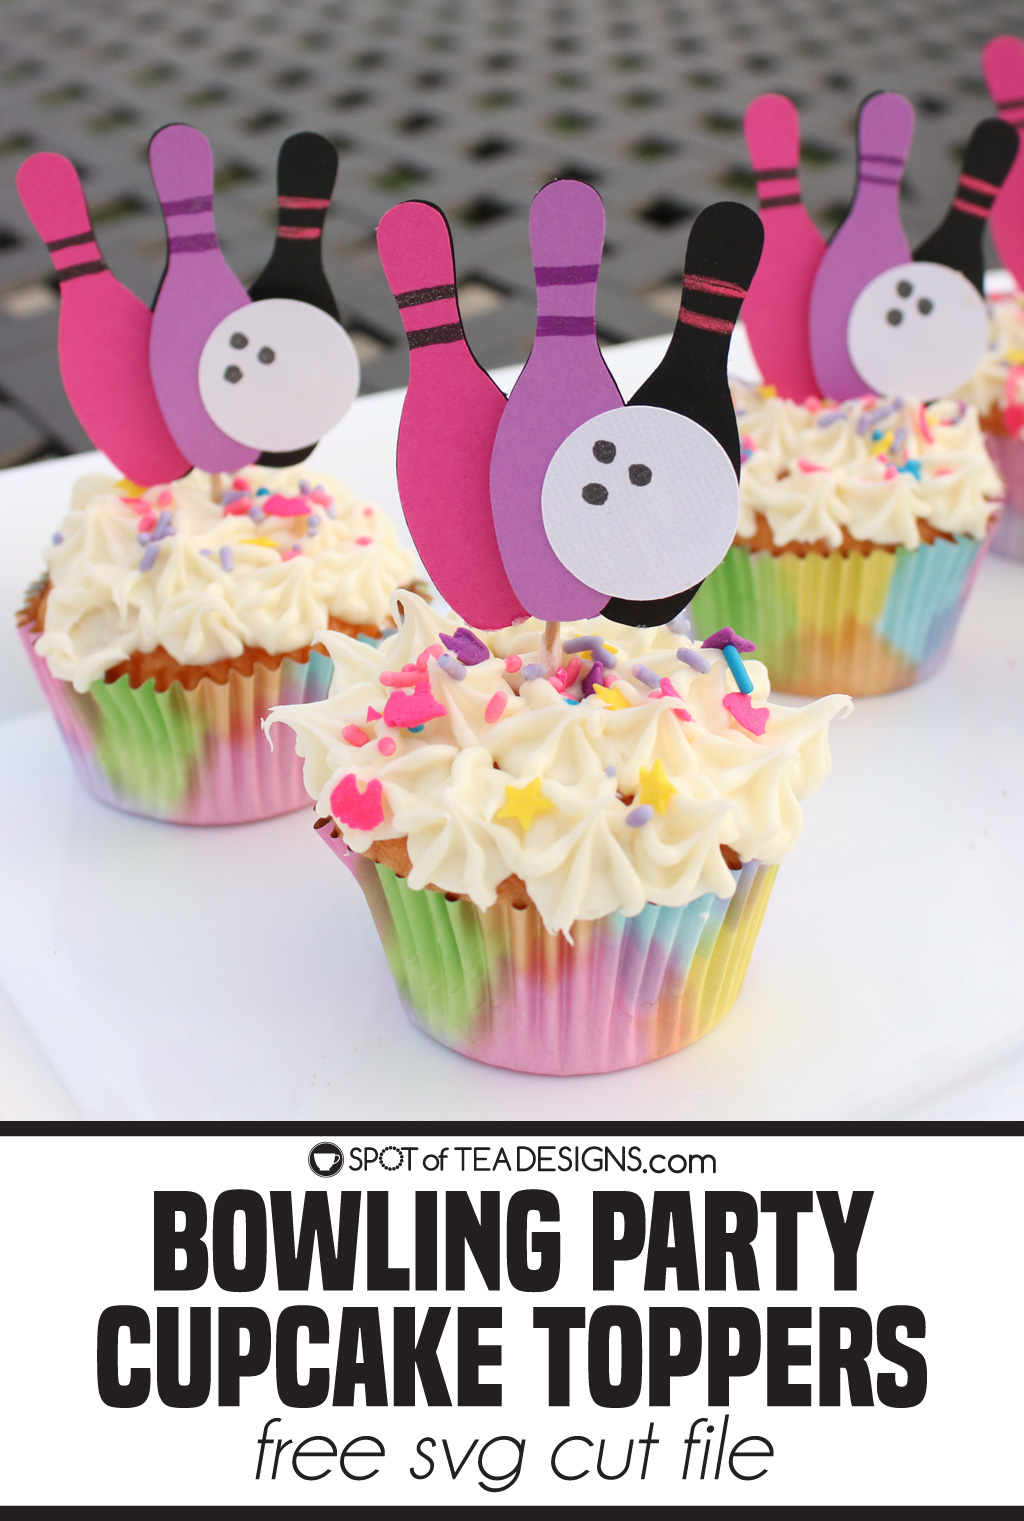 girls bowling party cupcake toppers with free svg cut file   spotofteadesigns.com